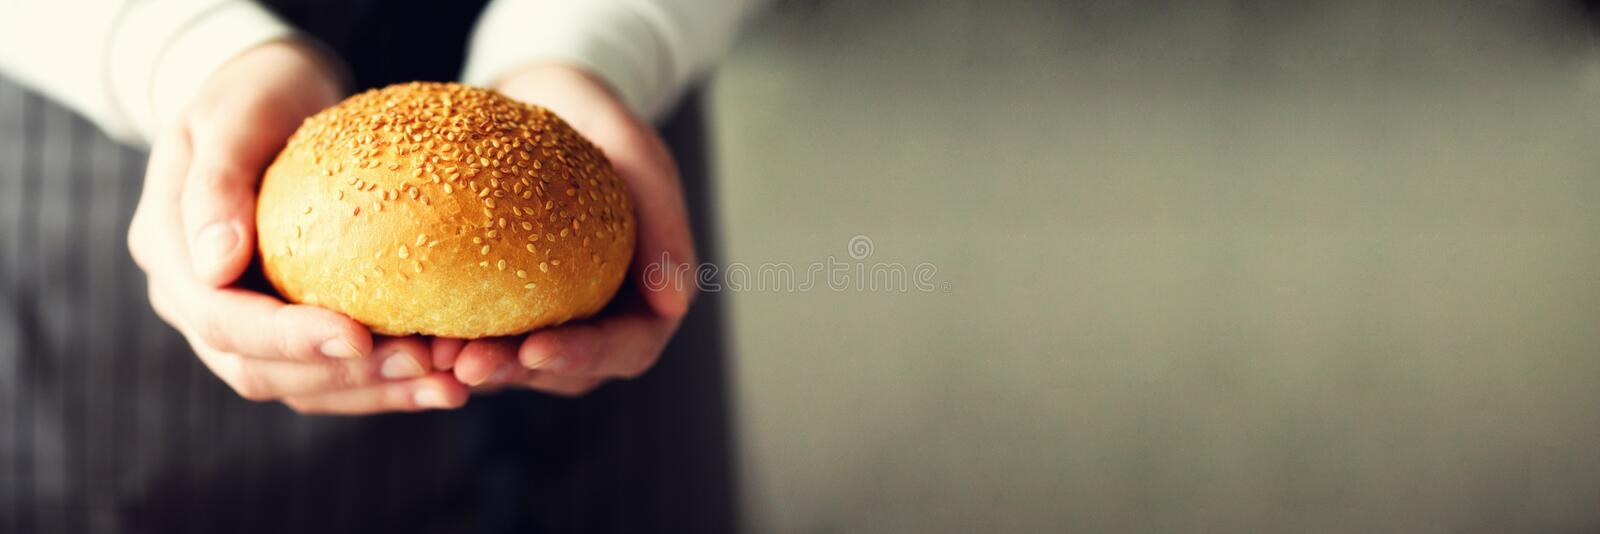 Woman hands holding freshly baked bread. Bun, cookie, bakery concept, homemade food, healthy eating. Copy space. Banner. Woman hands holding freshly baked bread stock photos